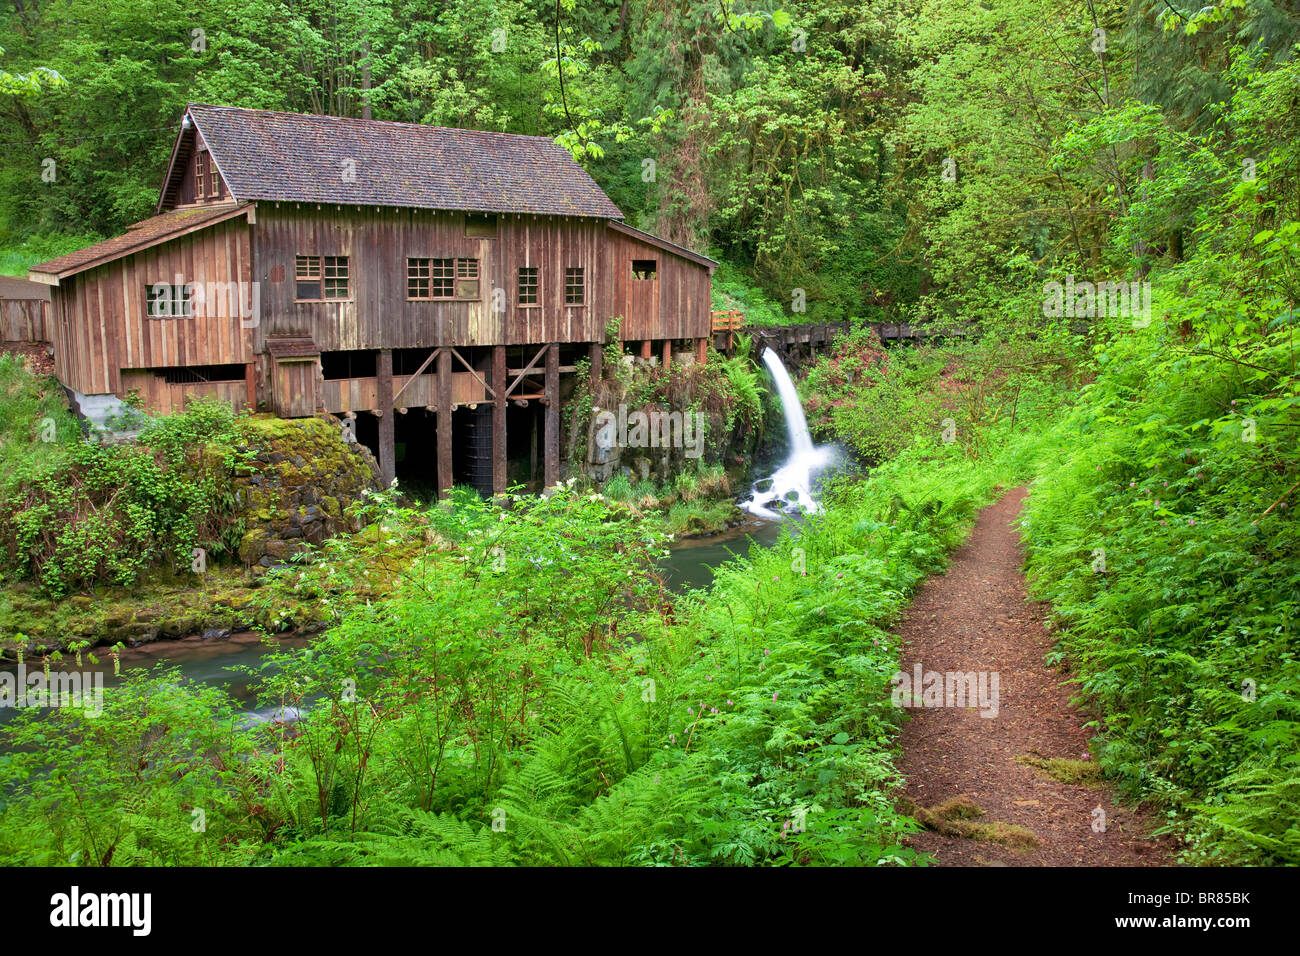 Cedar Creek Grist Mill in spring with path. Woodland, Washington - Stock Image